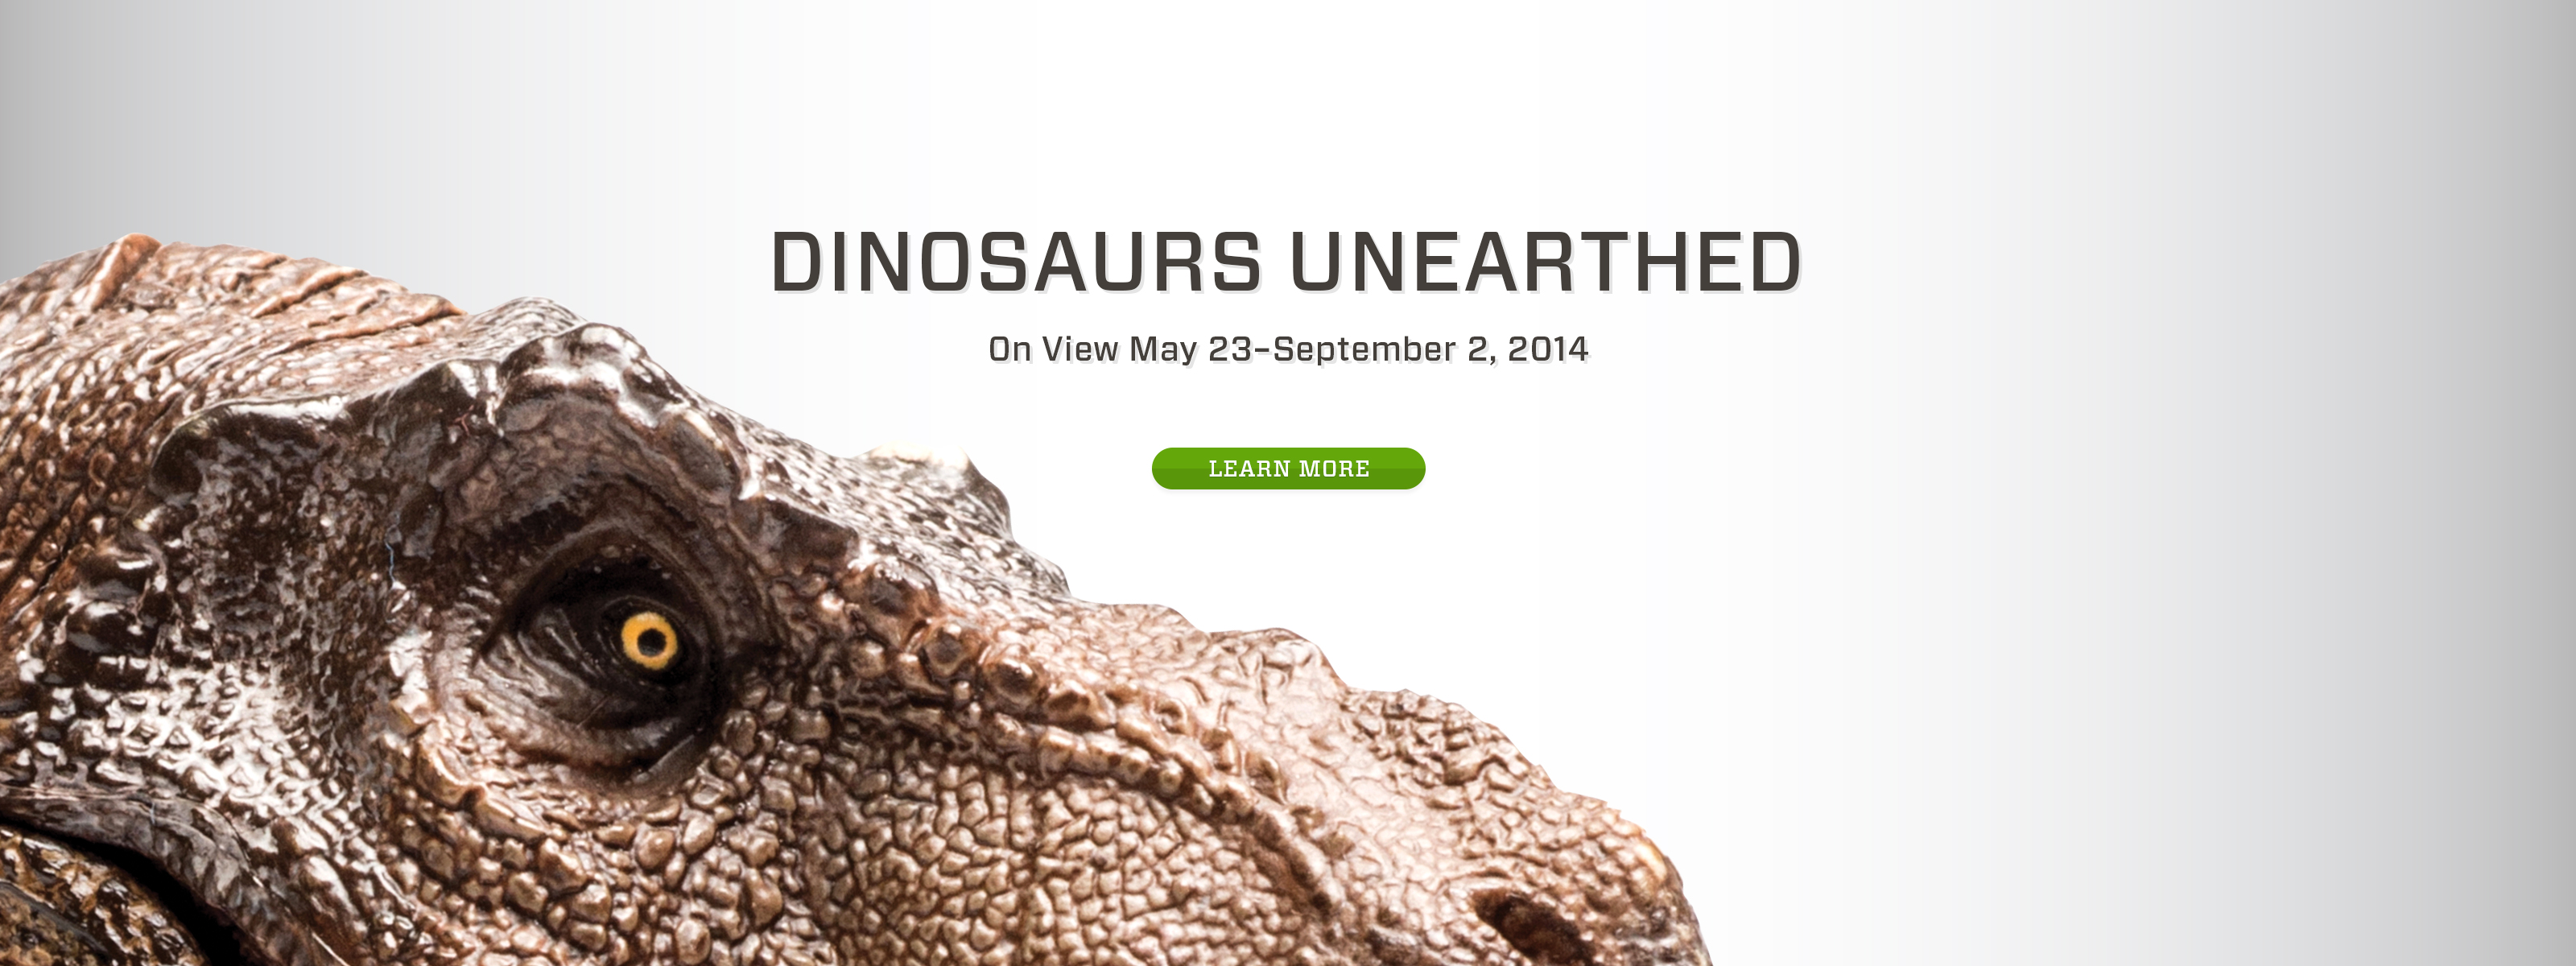 Dinosaurs Unearthed: Opening May 23